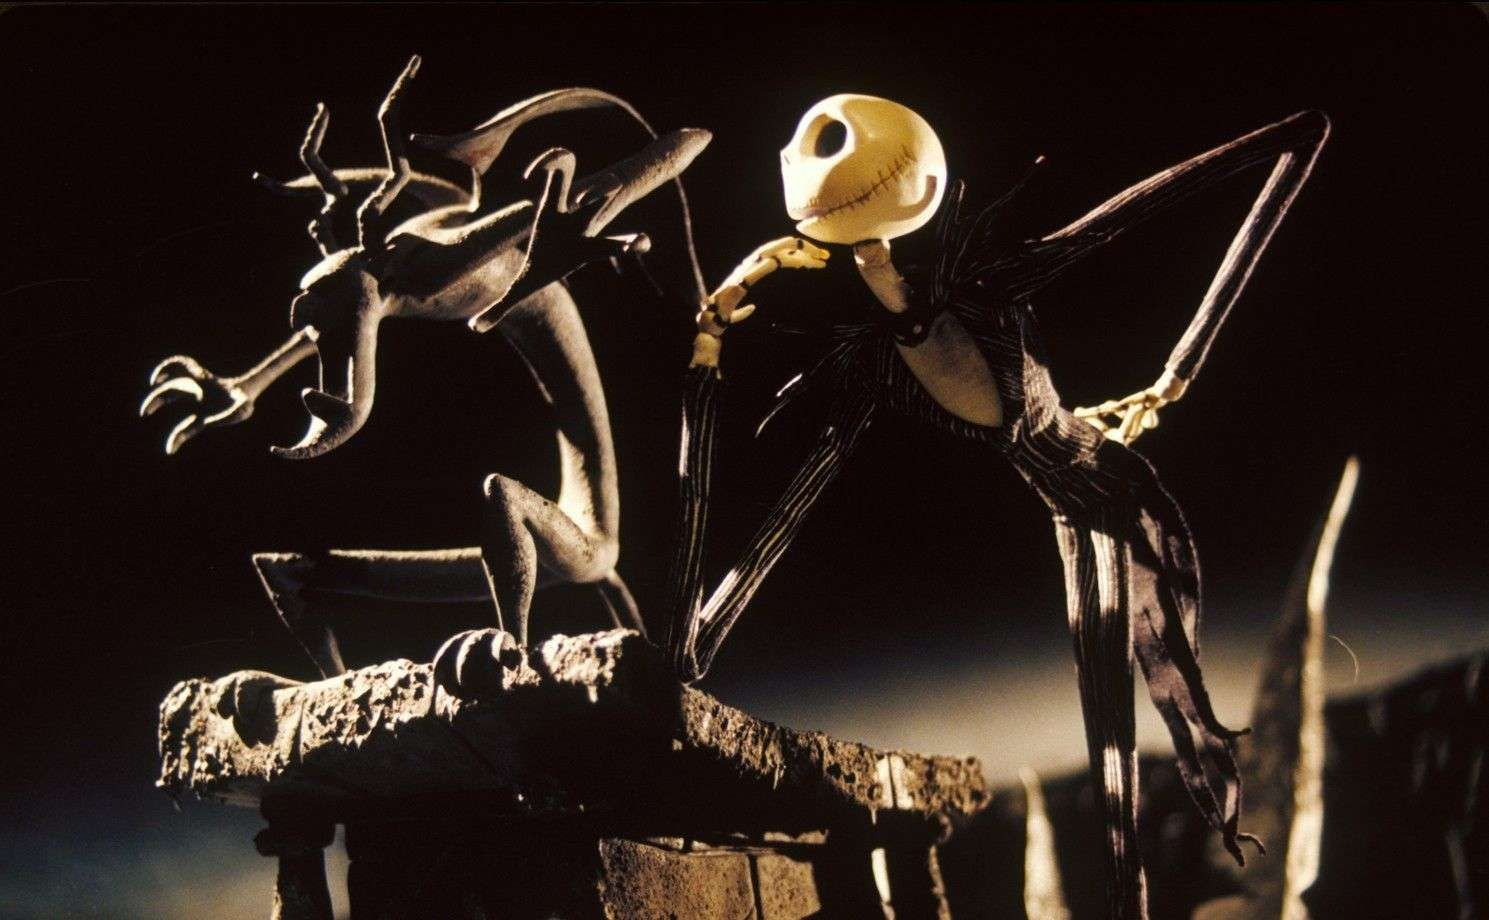 10 Times You Cheered For The Bad Guy Nightmare Before Christmas Wallpaper Nightmare Before Christmas Movie Nightmare Before Christmas Live